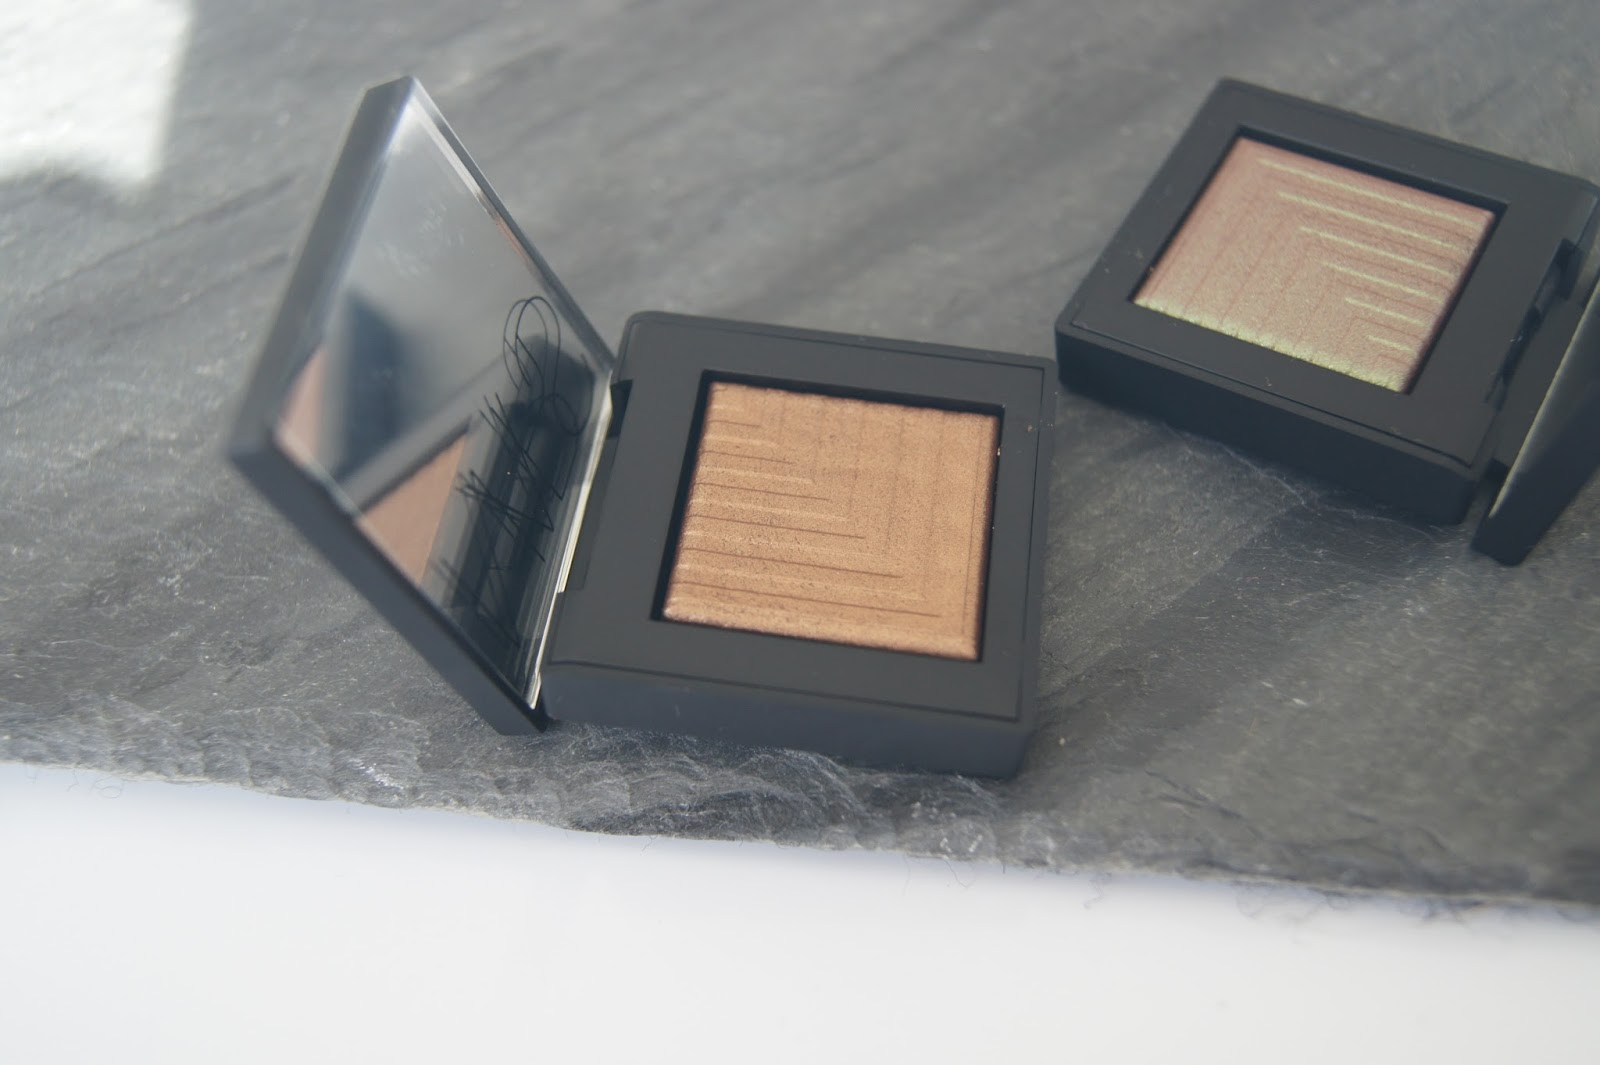 NARS Dual Intensity Eyeshadows Telesto